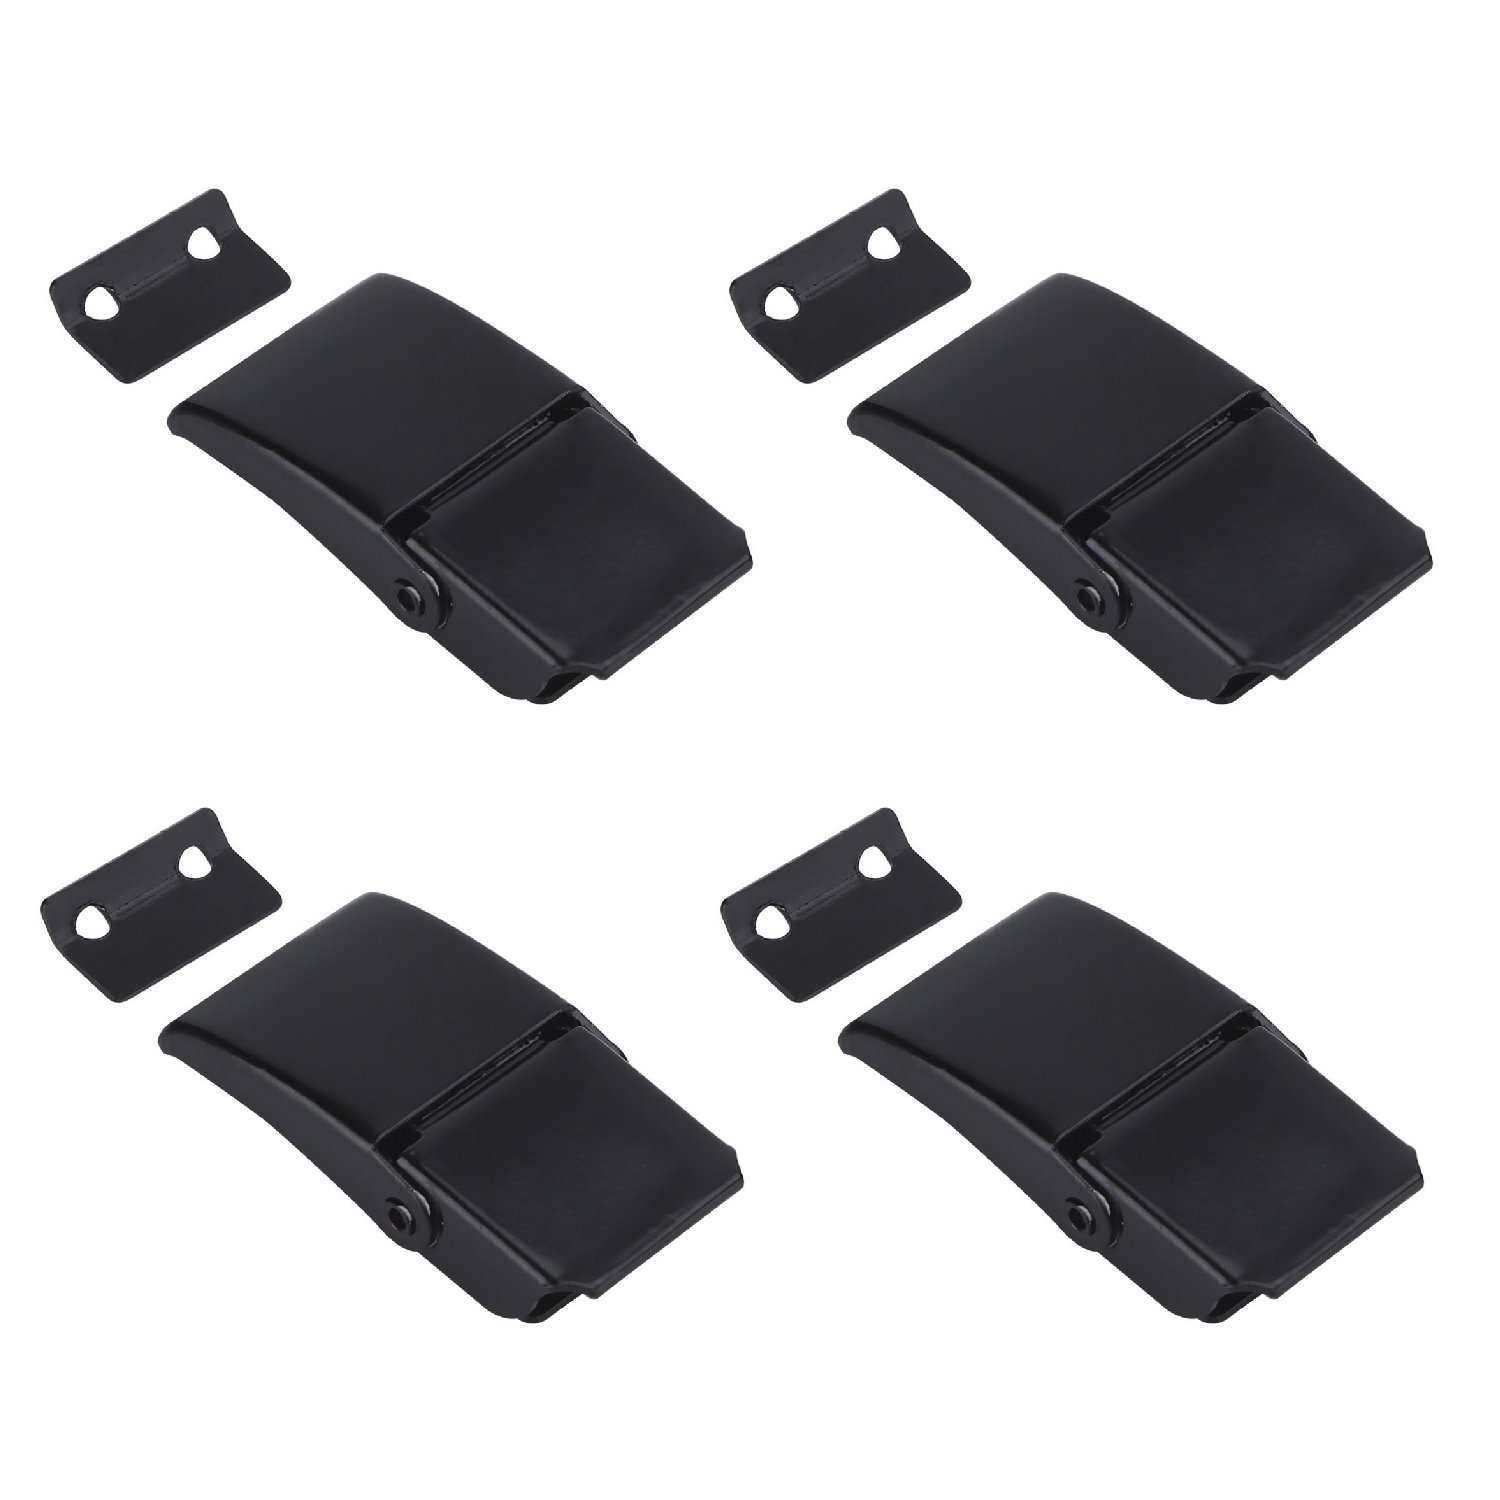 Creatyi 4 PCS A27 Black Concealed Toggle Latch Clamp for Case, Toolbox,Cleaner